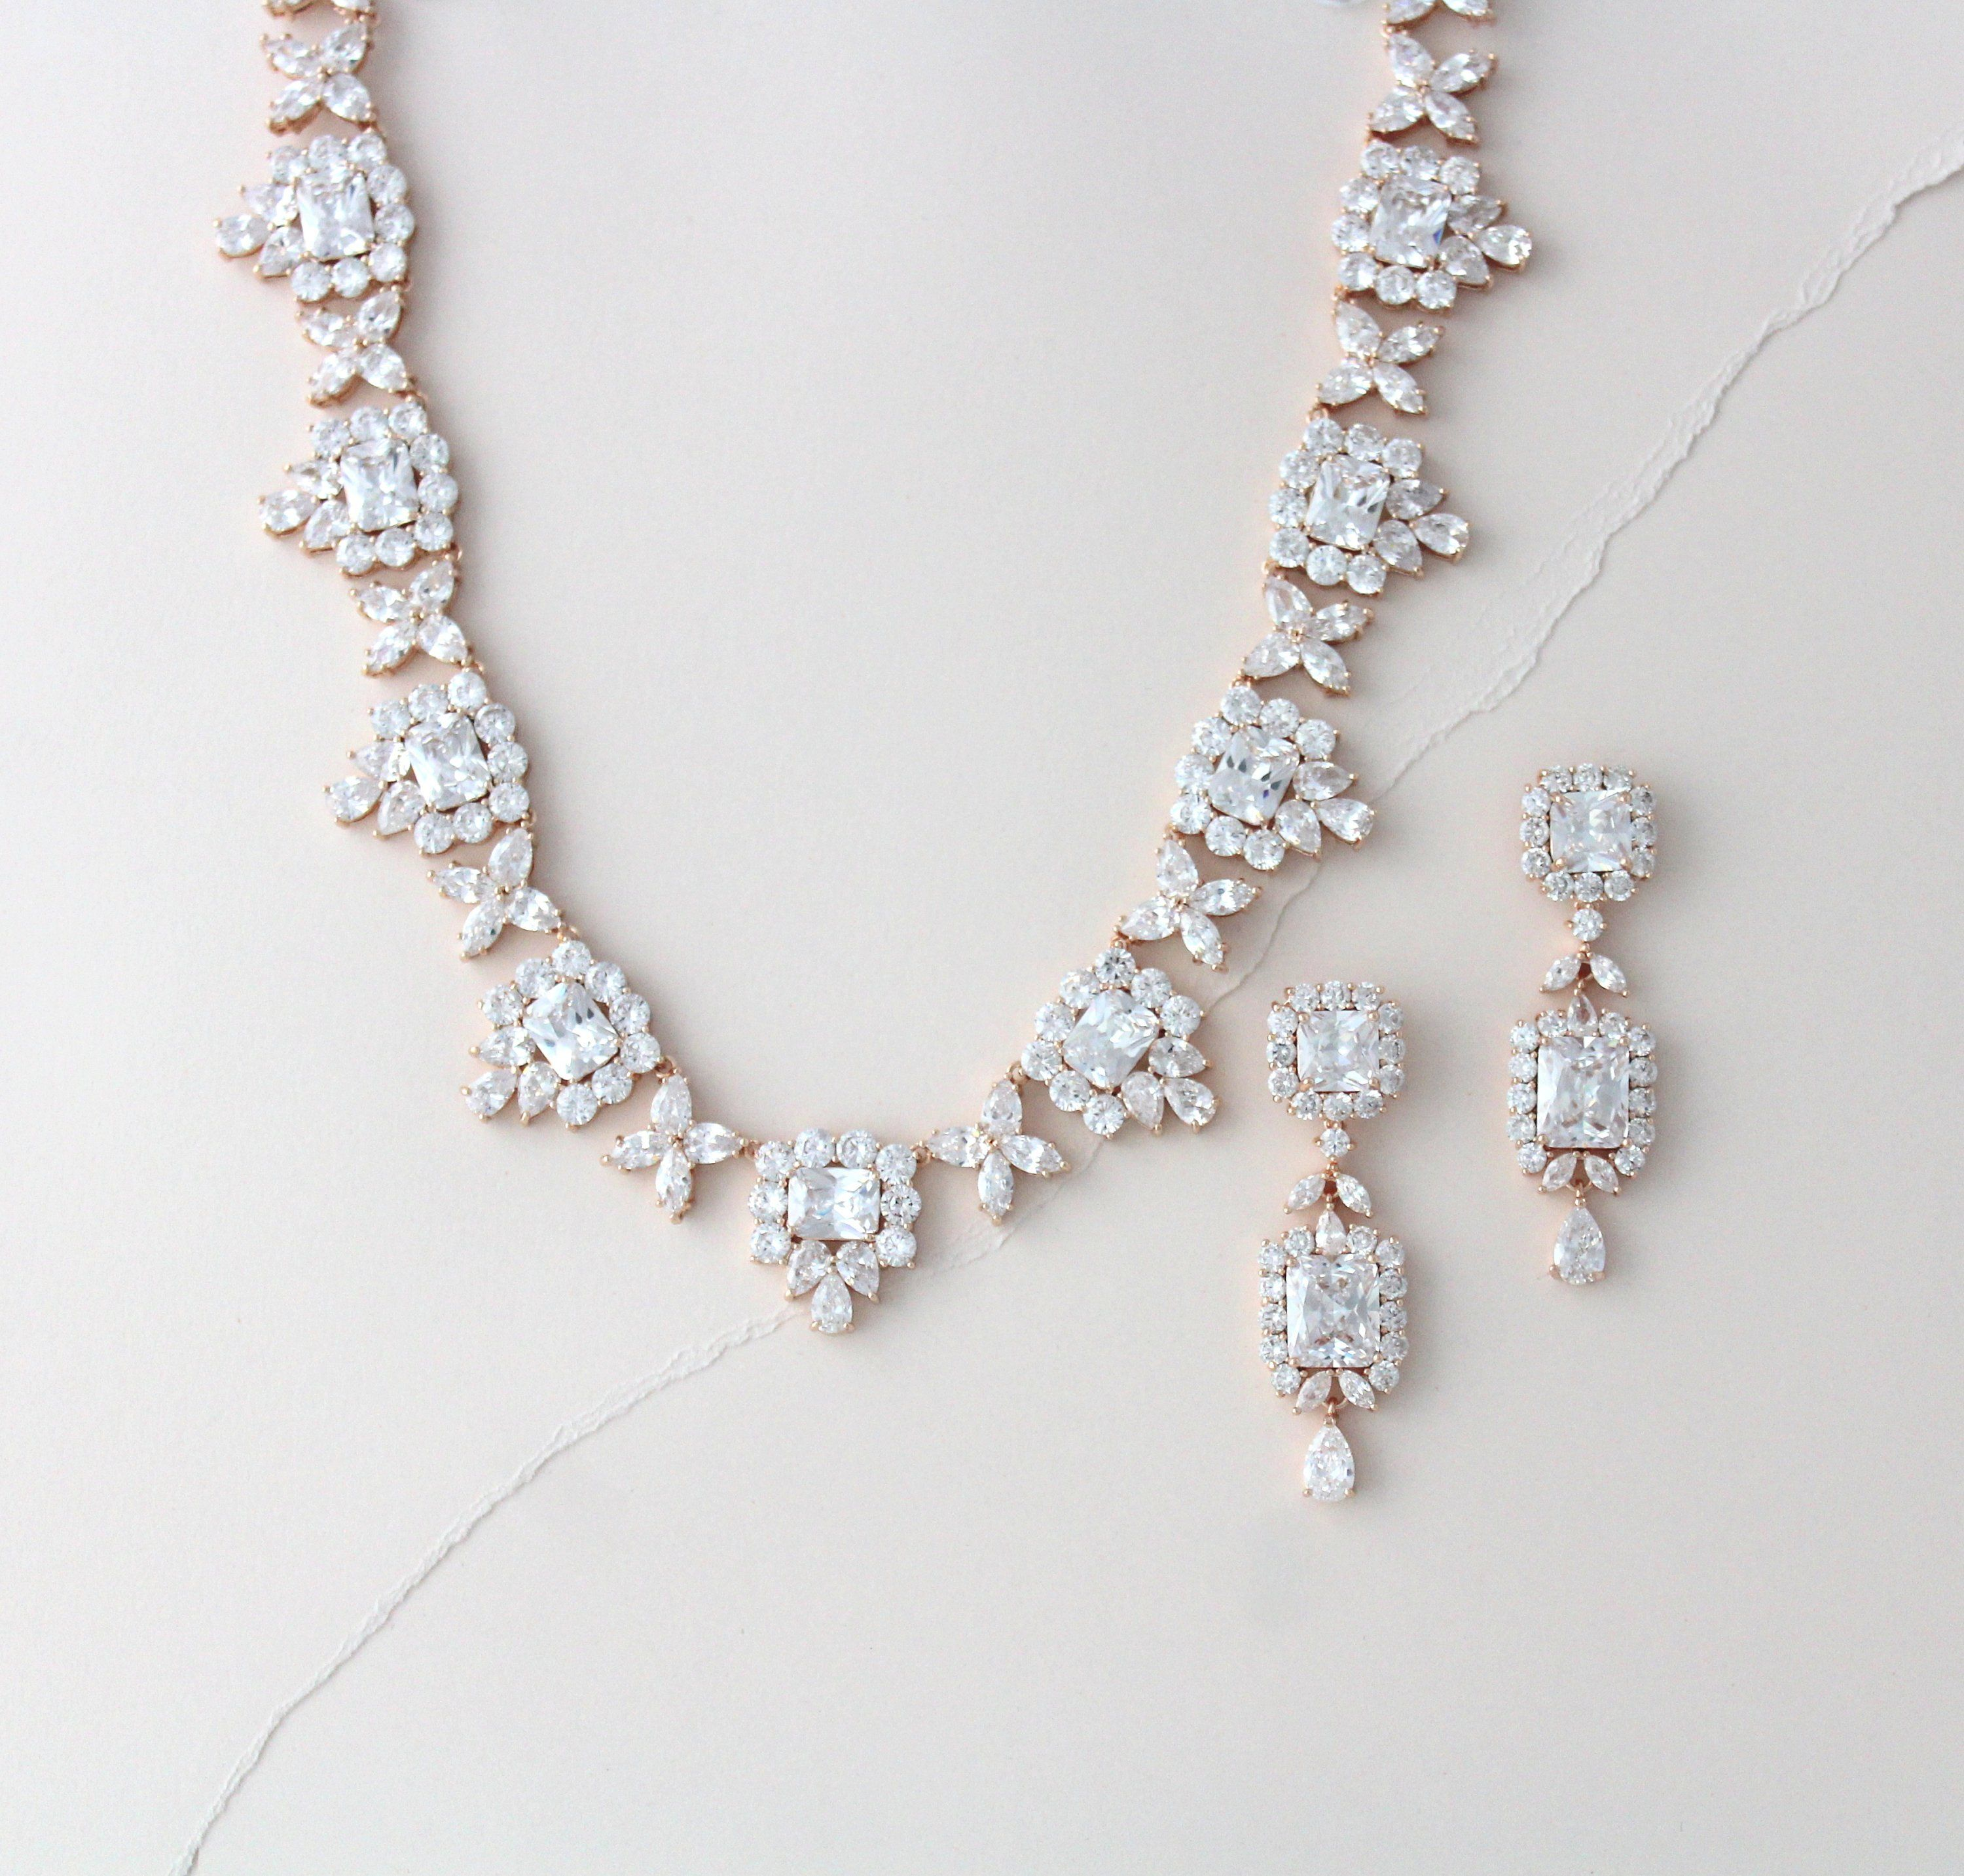 371ee9f0a Rose gold necklace and earring set Bridal jewelry Bridal necklace set  Crystal necklace Statement necklace Vintage style Wedding jewelry by  TheExquisiteBride ...